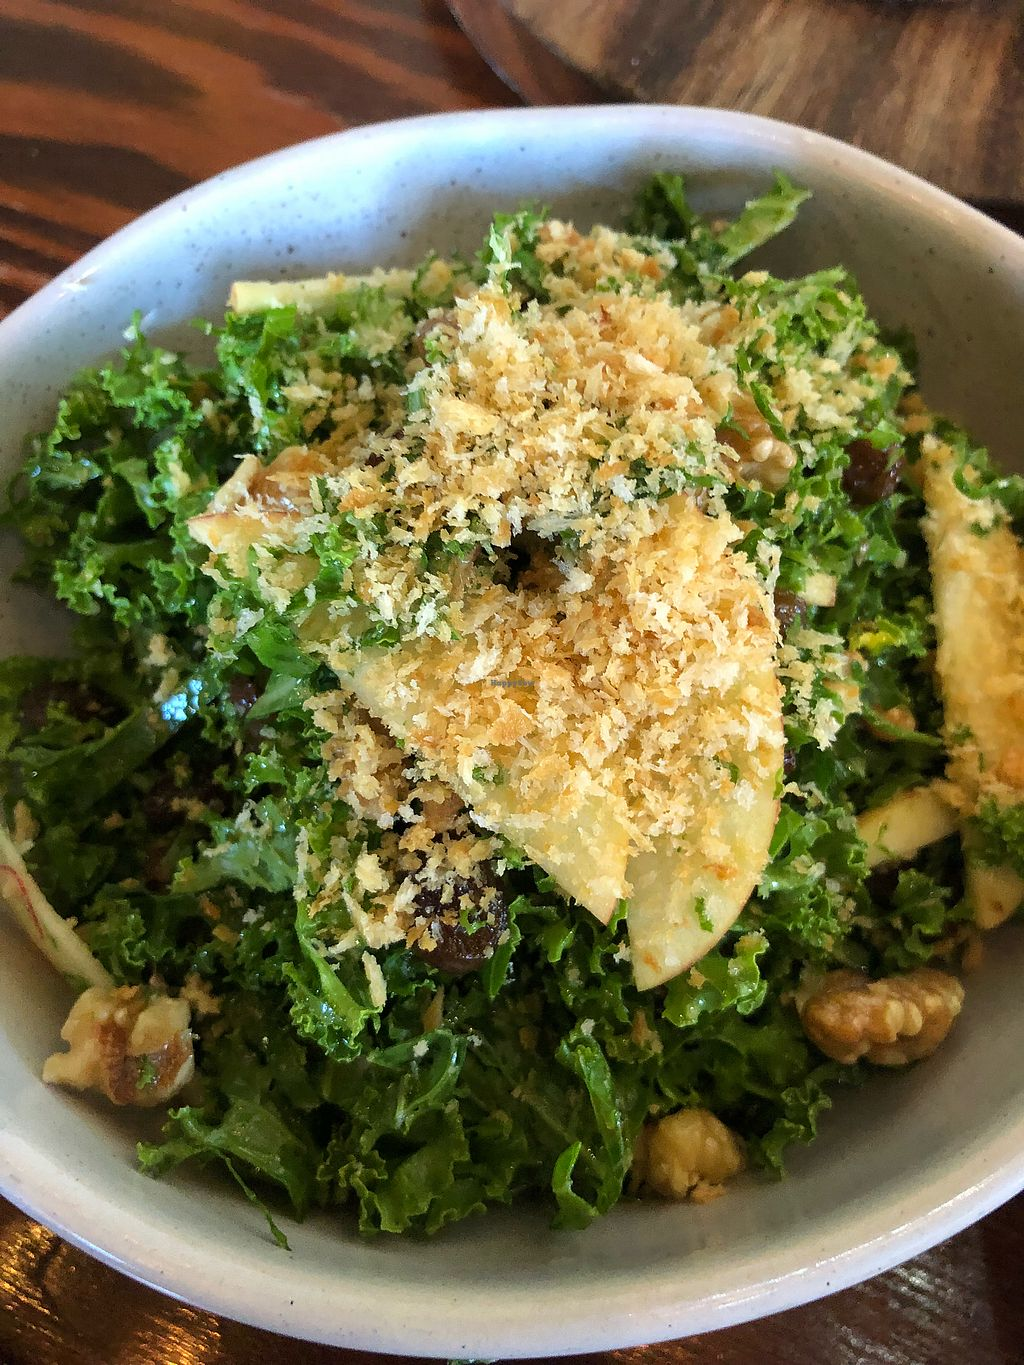 """Photo of Francesca's Italian Kitchen  by <a href=""""/members/profile/ben_eitel"""">ben_eitel</a> <br/>Kale salad (minus the Parmesan) <br/> March 17, 2018  - <a href='/contact/abuse/image/40558/371714'>Report</a>"""